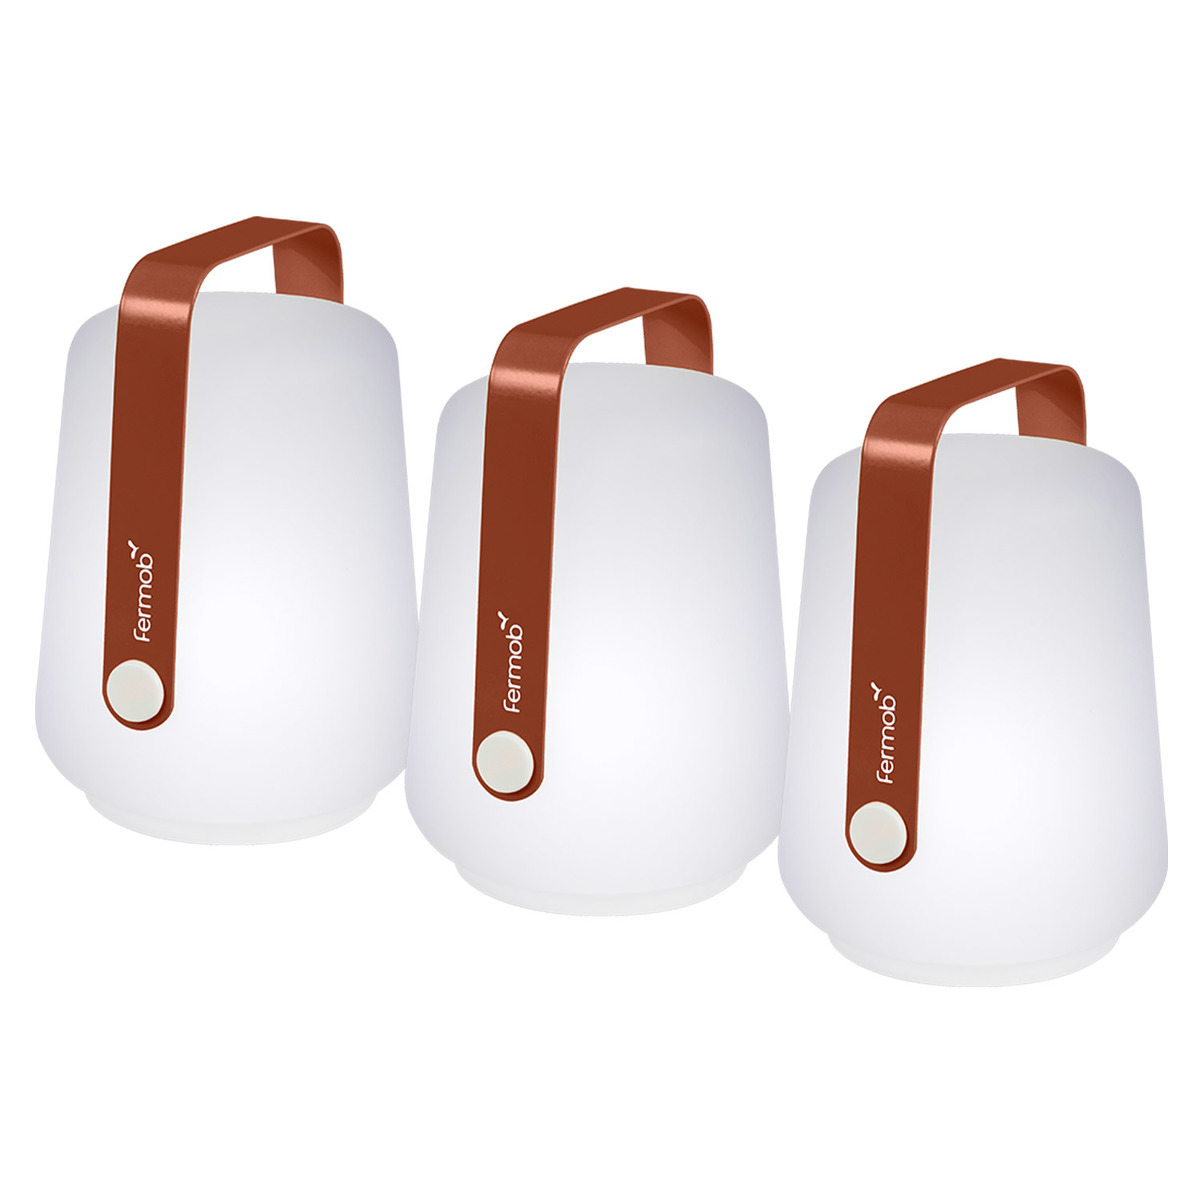 Fermob Balad lamp 12 cm, set of 3, red ochre from Fermob